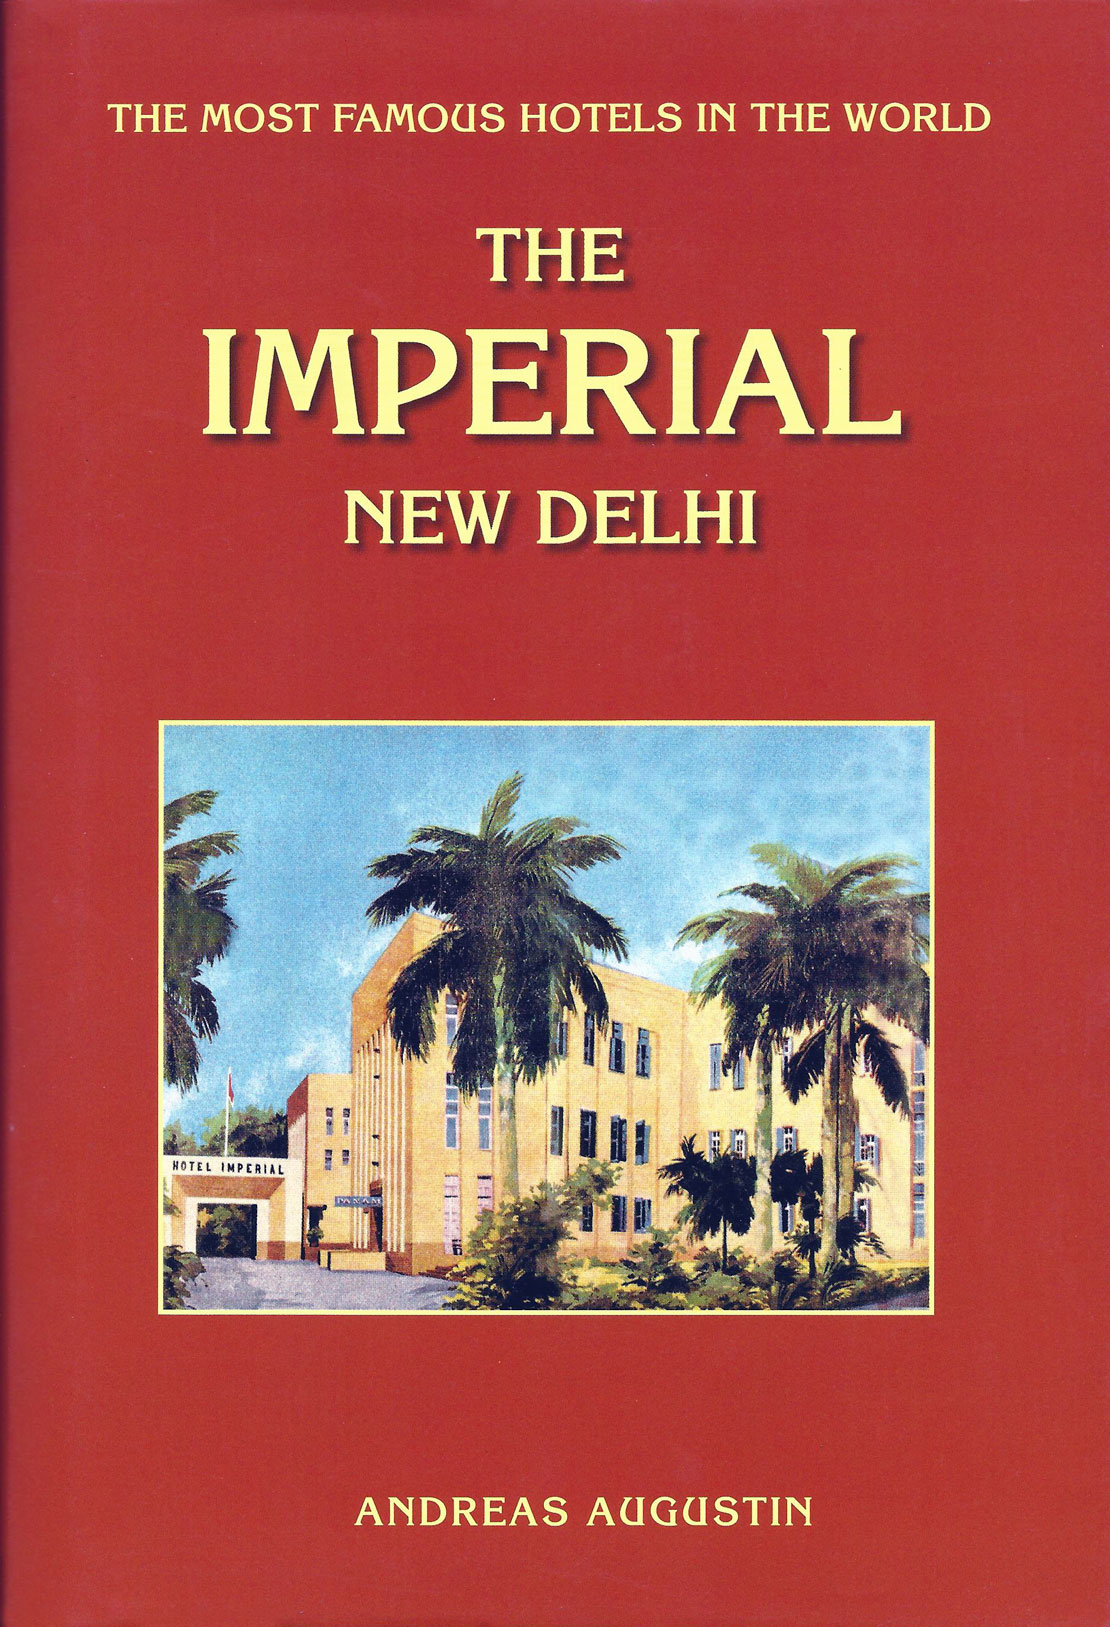 imperial new delhi by andreas augustin